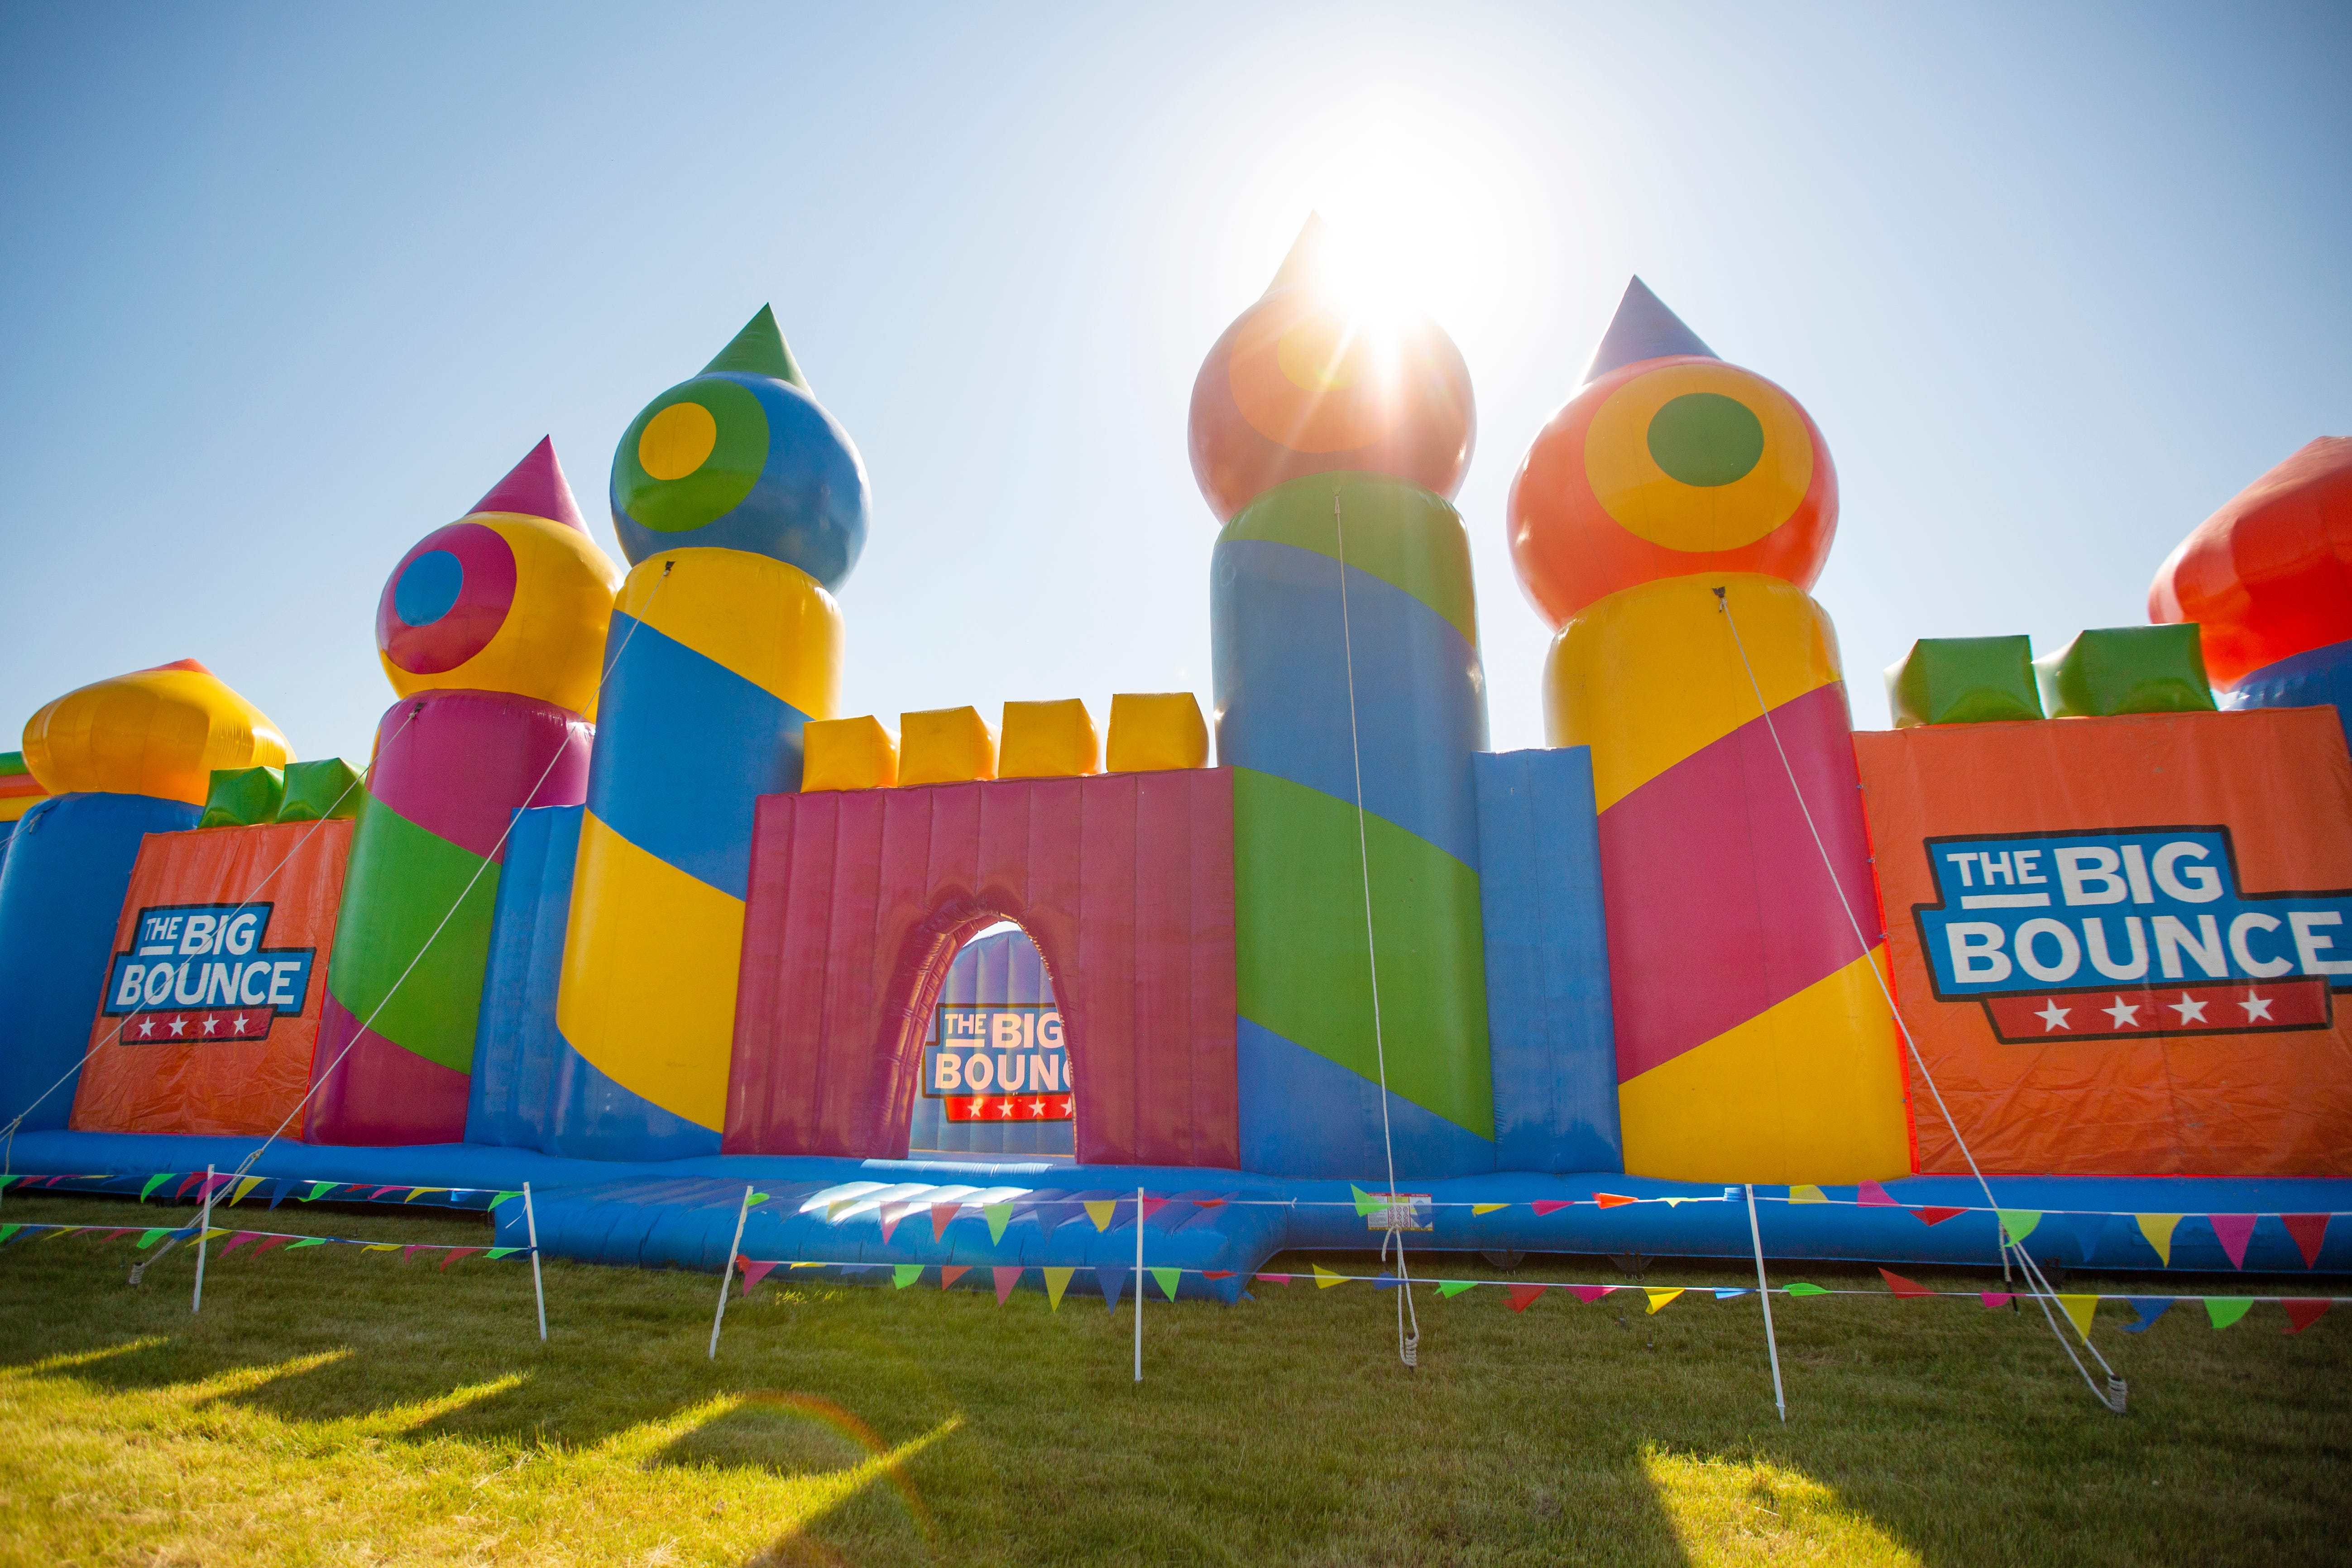 Giant bounce house is coming to Islamic Center of Detroit's Eid festival in Dearborn